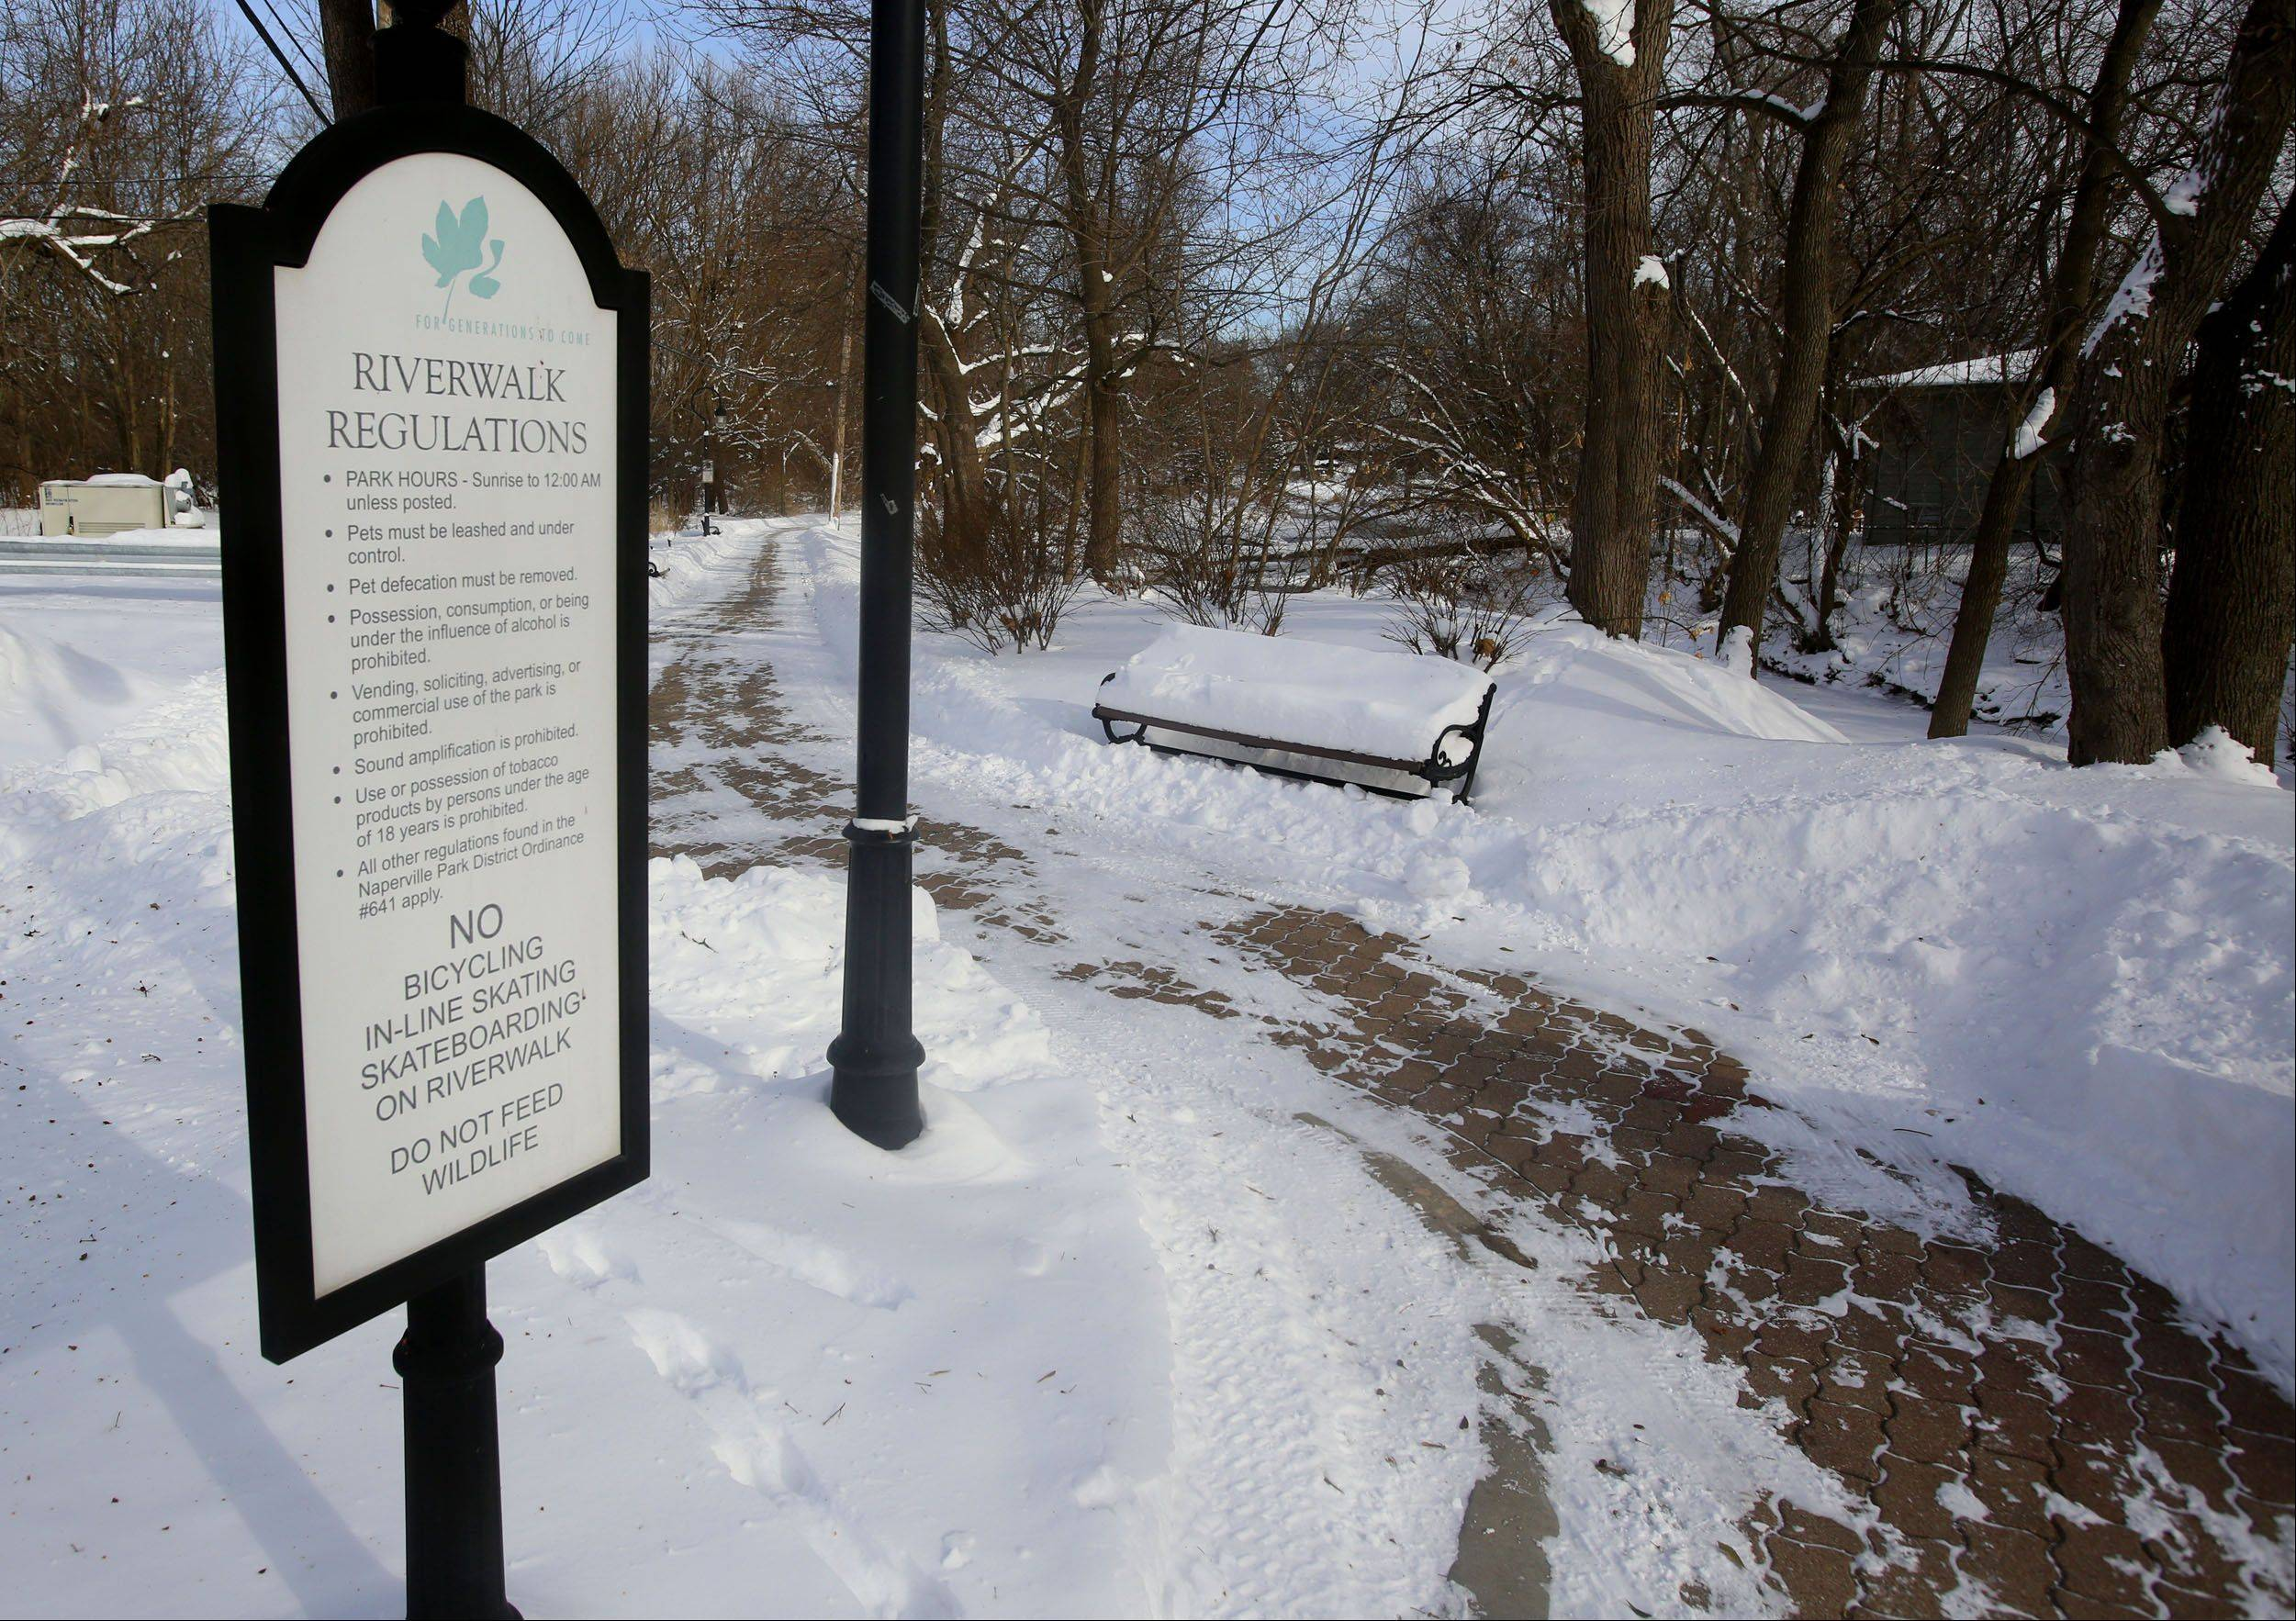 Naperville City Council later this month will consider a boundary change for the downtown Riverwalk that could lead to the path being extended to Martin Avenue from its end at Hillside Road.